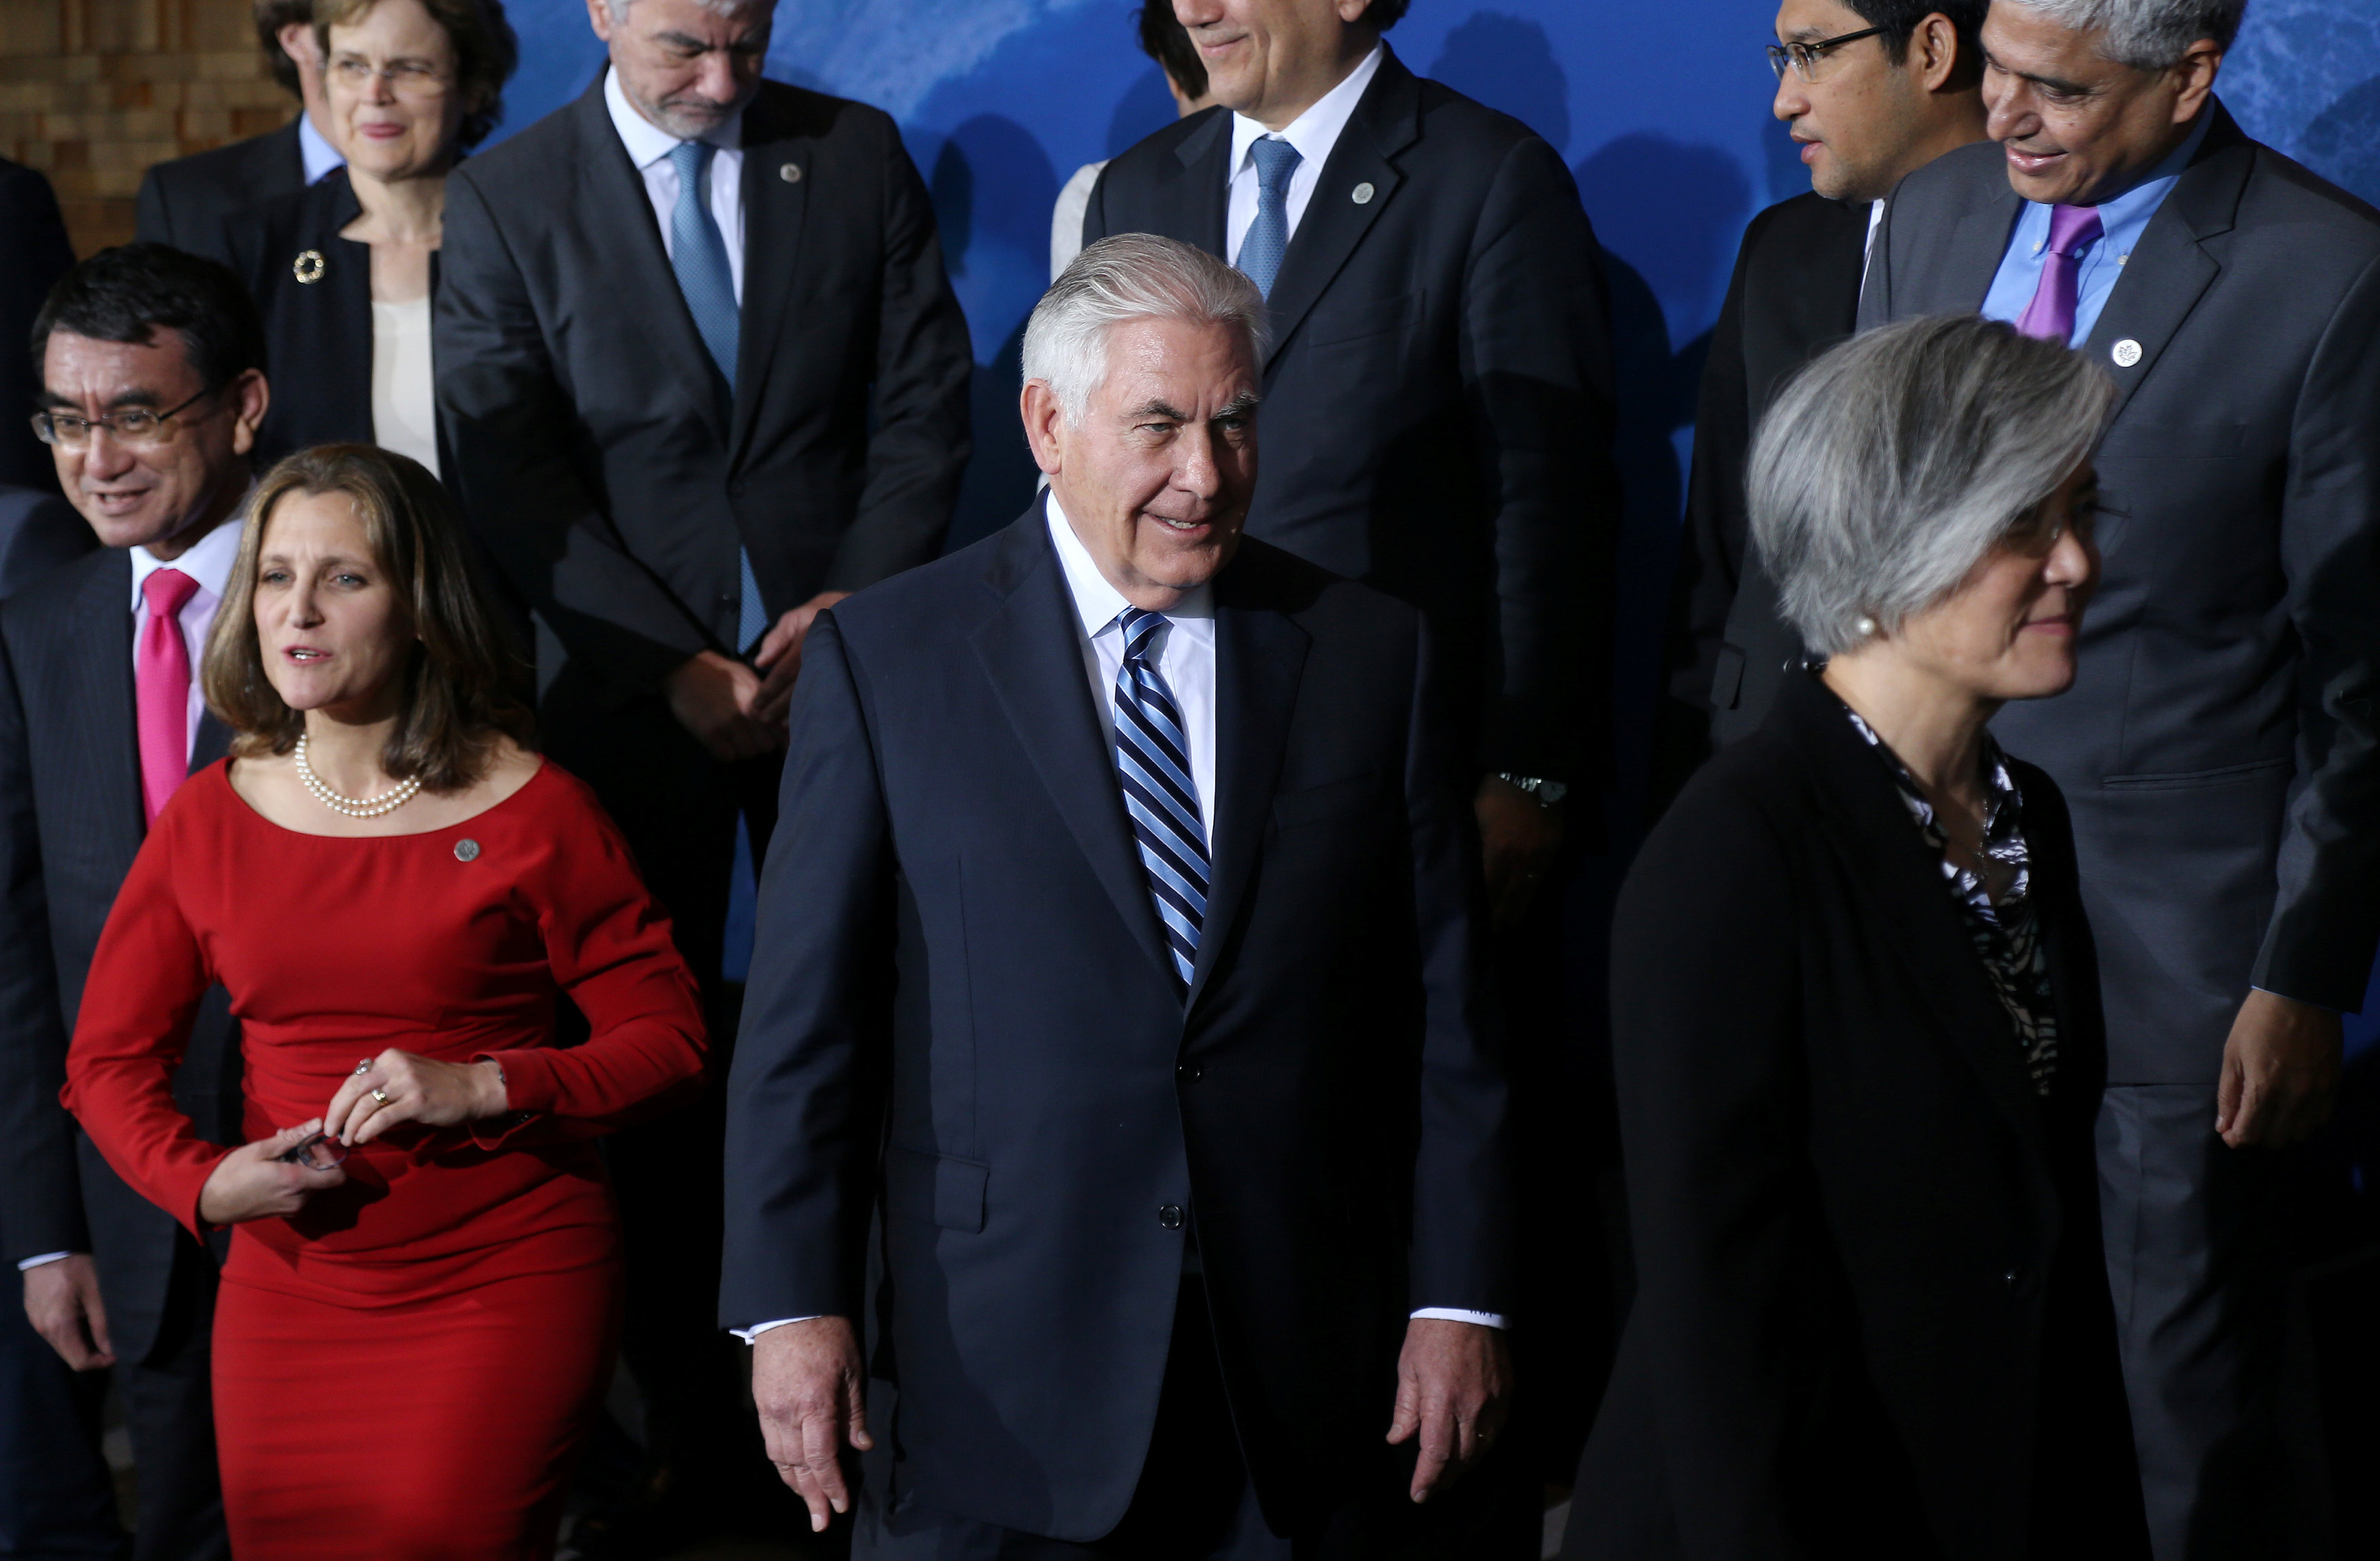 U.S. Secretary of State Rex Tillerson is pictured after a photo op during the Foreign Ministers' Meeting on Security and Stability on the Korean Peninsula in Vancouver, British Columbia, Canada, January 16, 2018.